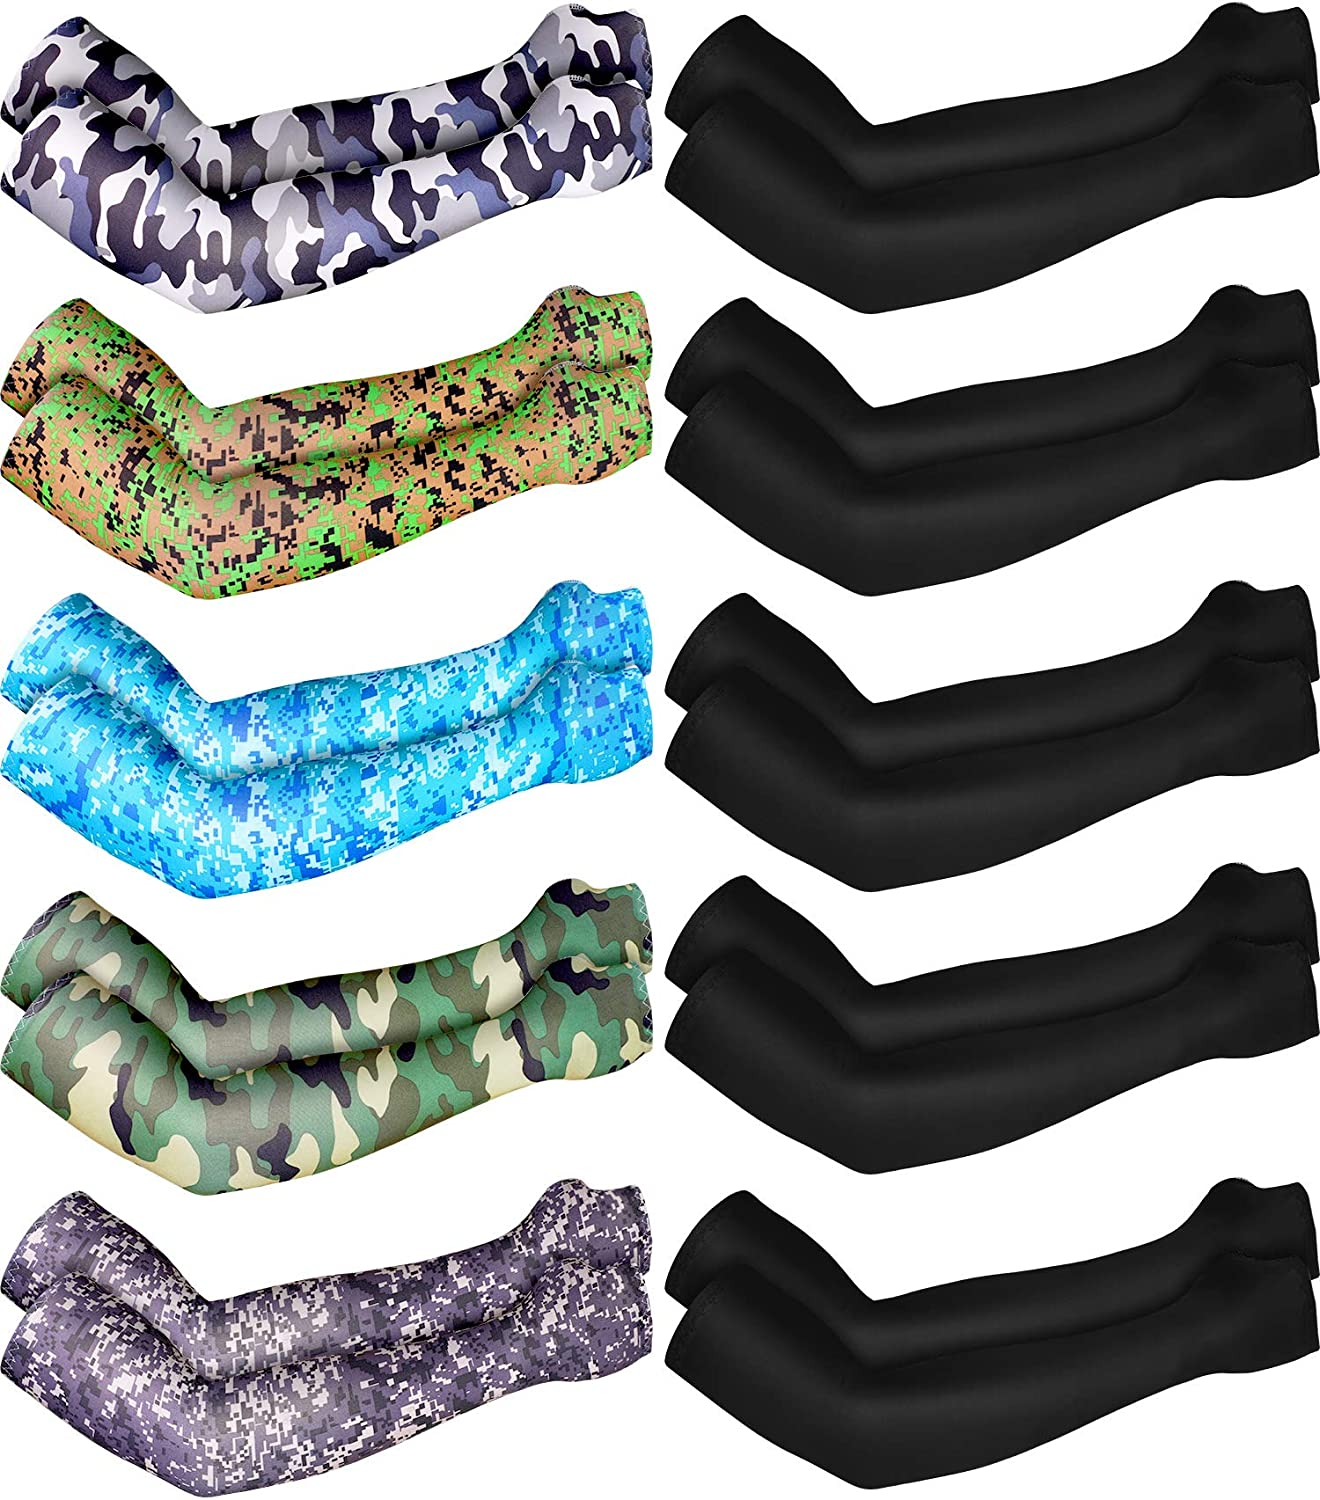 Boao 10 Pairs UV Protection Cooling Arm Sleeves Anti-Slip Ice Silk Arm Cover for Men (6 Colors)